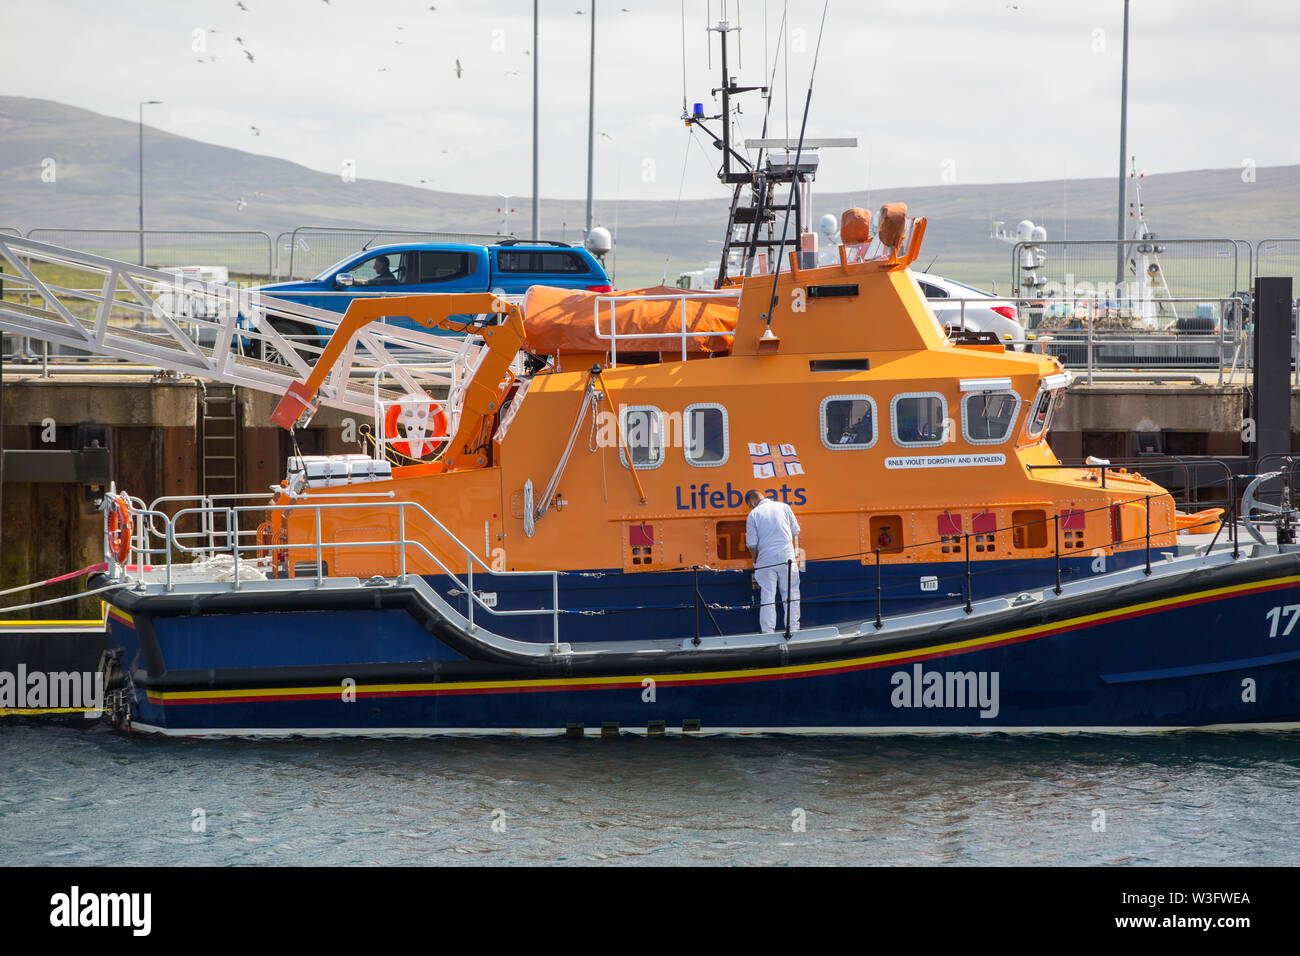 The stromness lifeboat in Stromness harbour, Orkney, Scotland, UK. - Stock Image